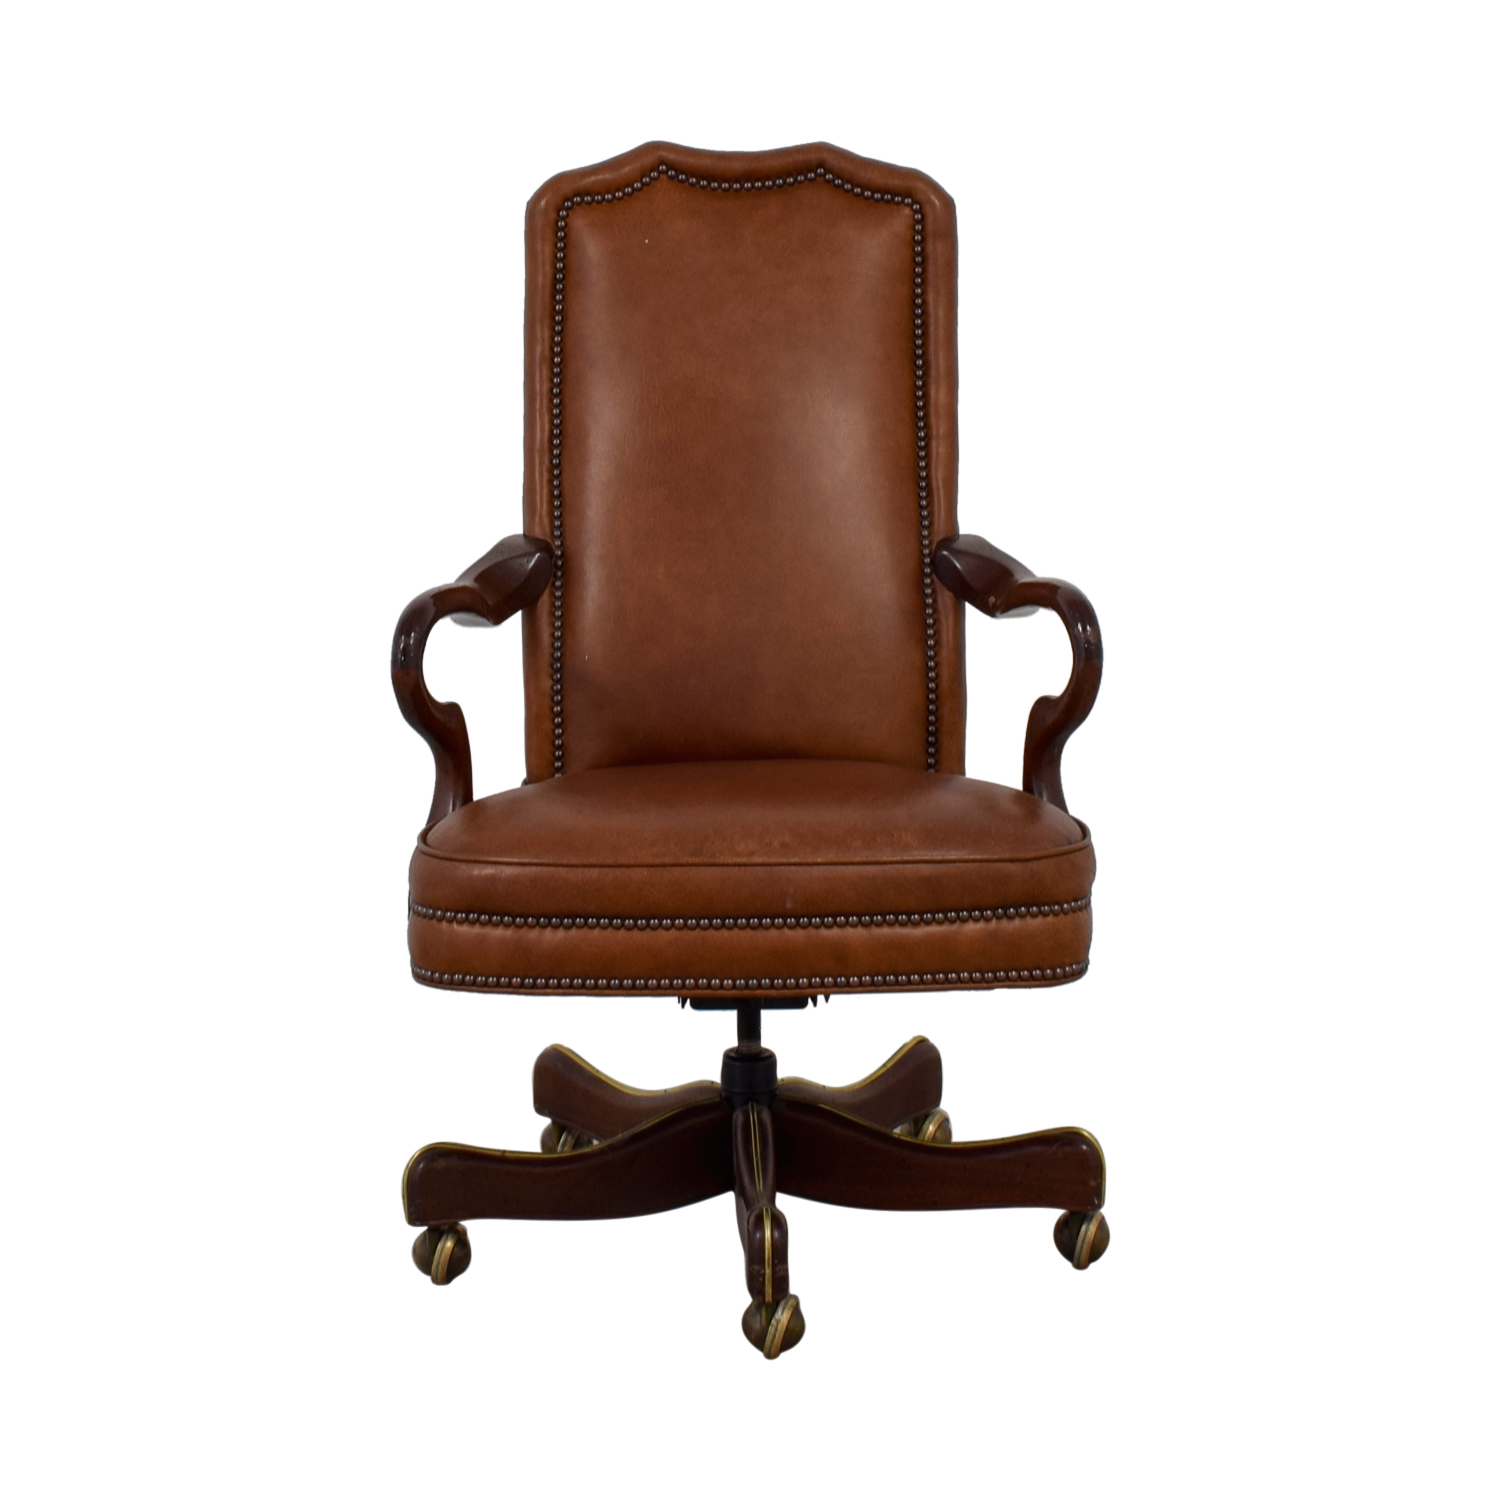 71% OFF - Charles Stewart Charles Stewart Company Brown Leather Desk Chair  / Chairs